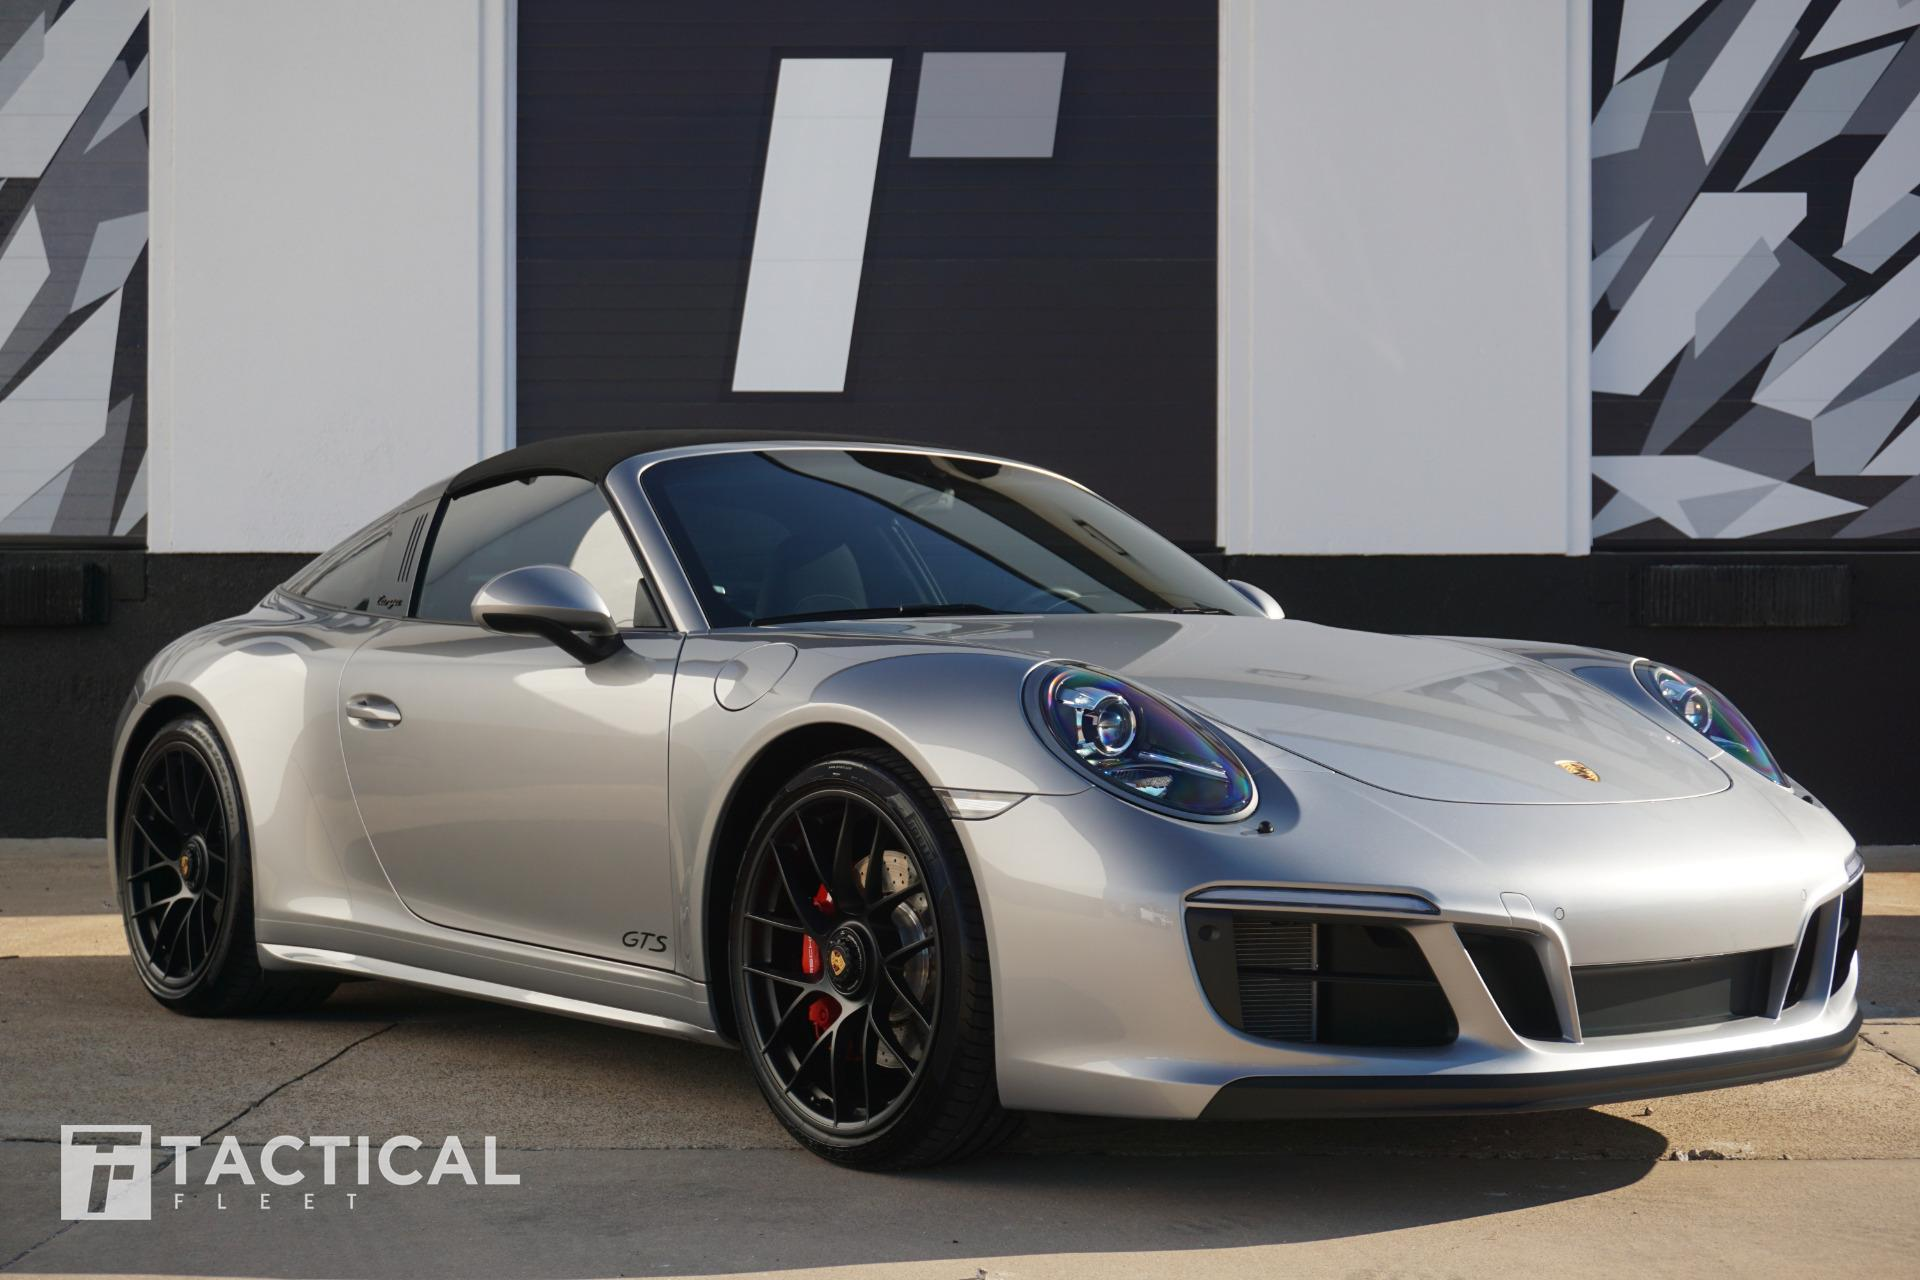 Used 2018 Porsche 911 Targa 4 Gts For Sale 149900